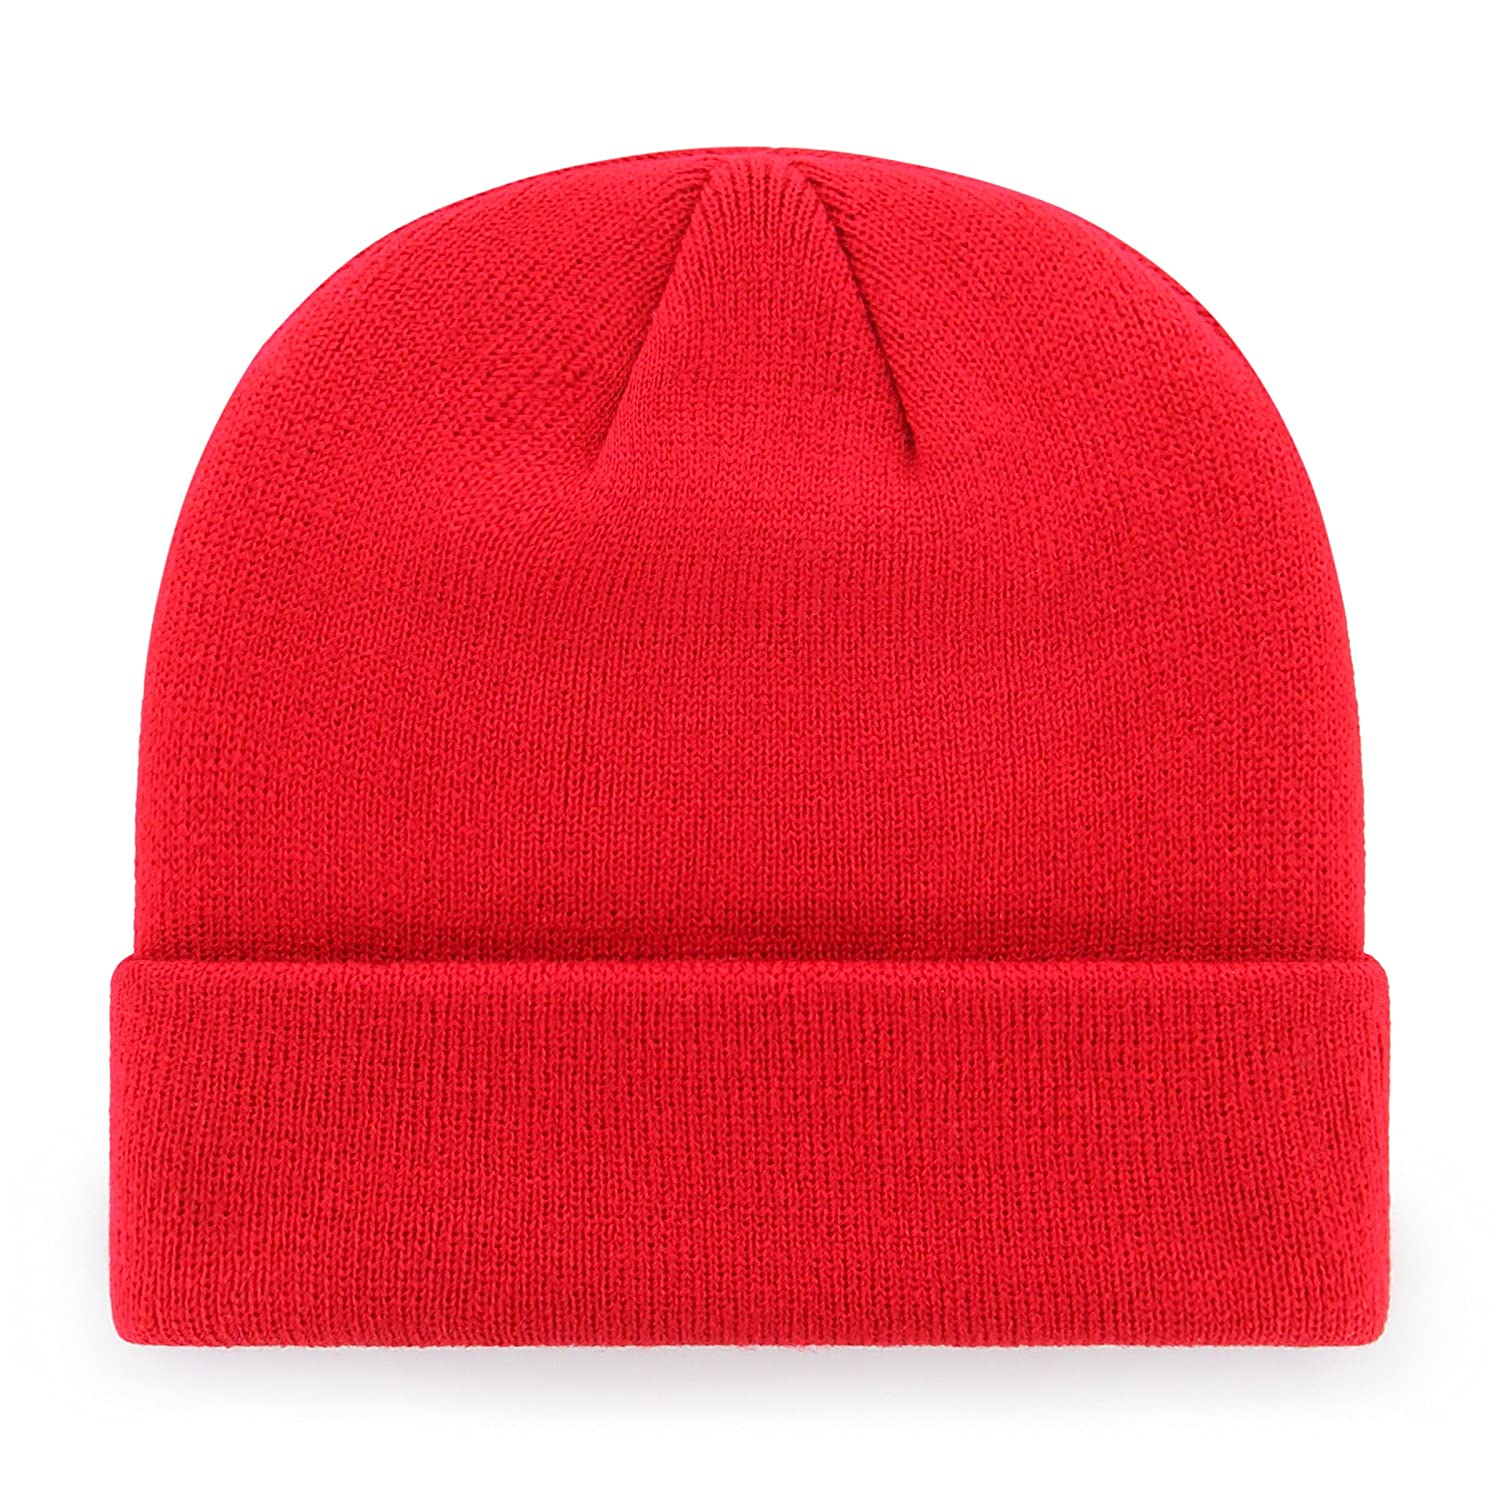 Team Color OTS Adult Mens NCAA Raised Cuff Knit Cap One Size